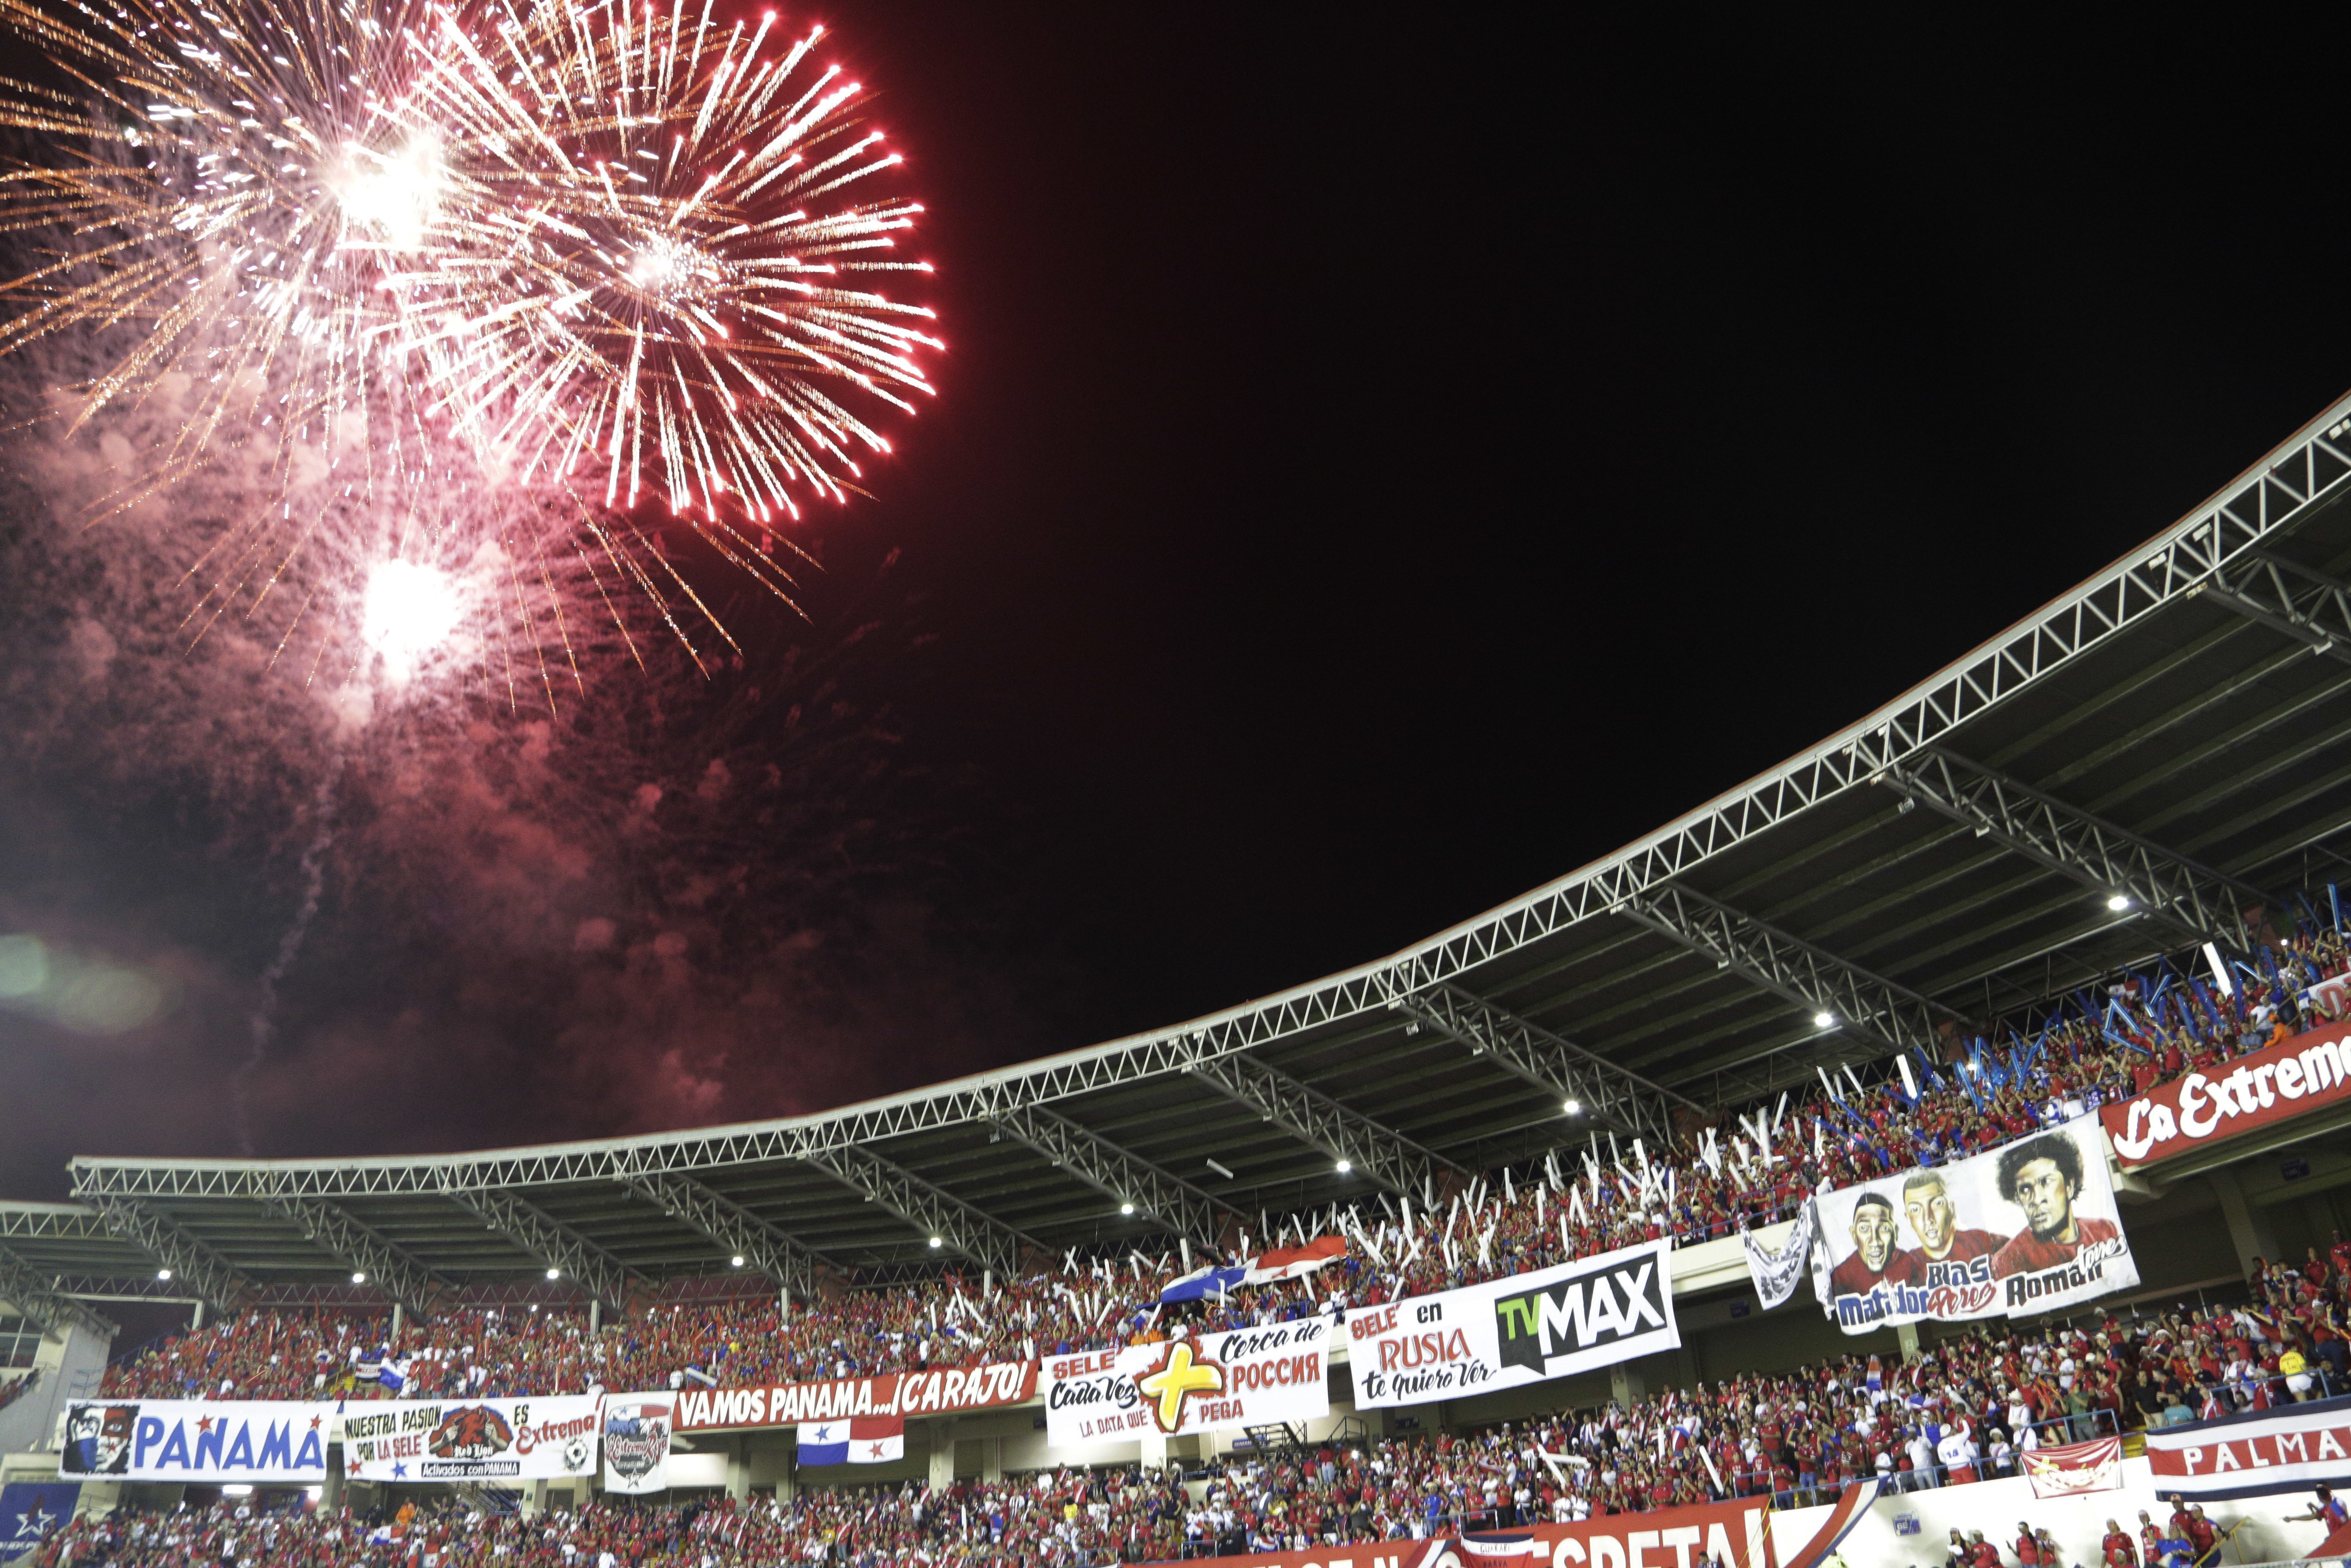 The incredible reactions to Panama's first World Cup qualification